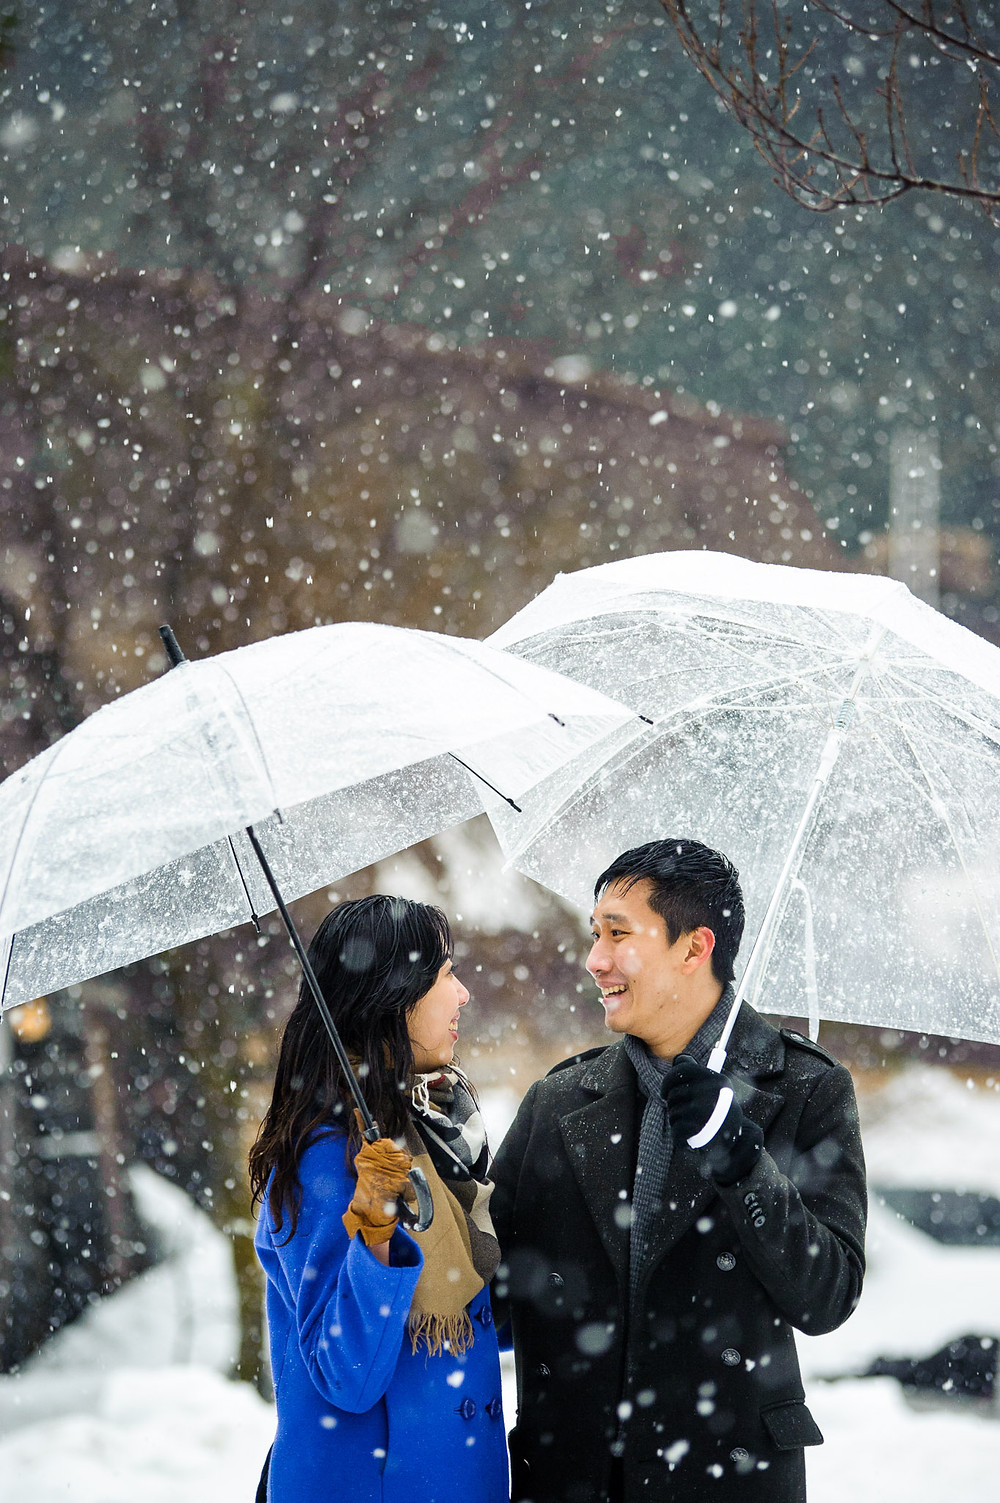 The couple stands together in the snow under umbrellas